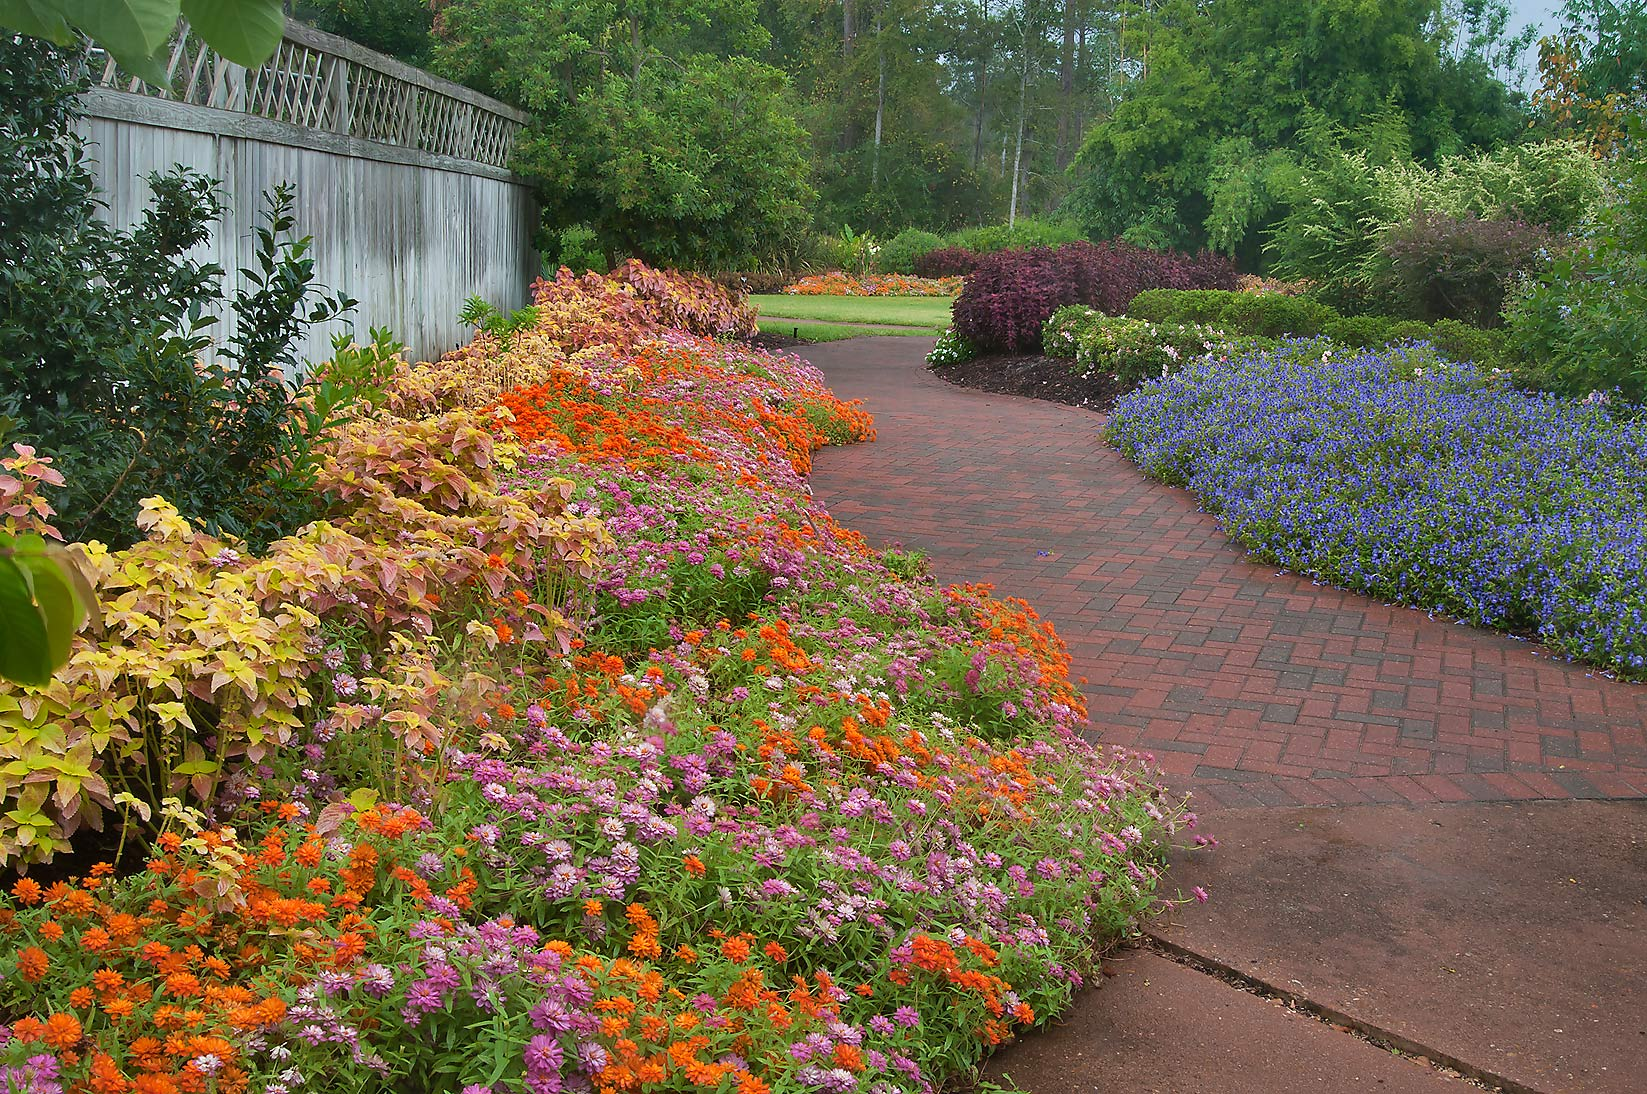 Flower beds in Mercer Arboretum and Botanical Gardens. Humble (Houston area), Texas